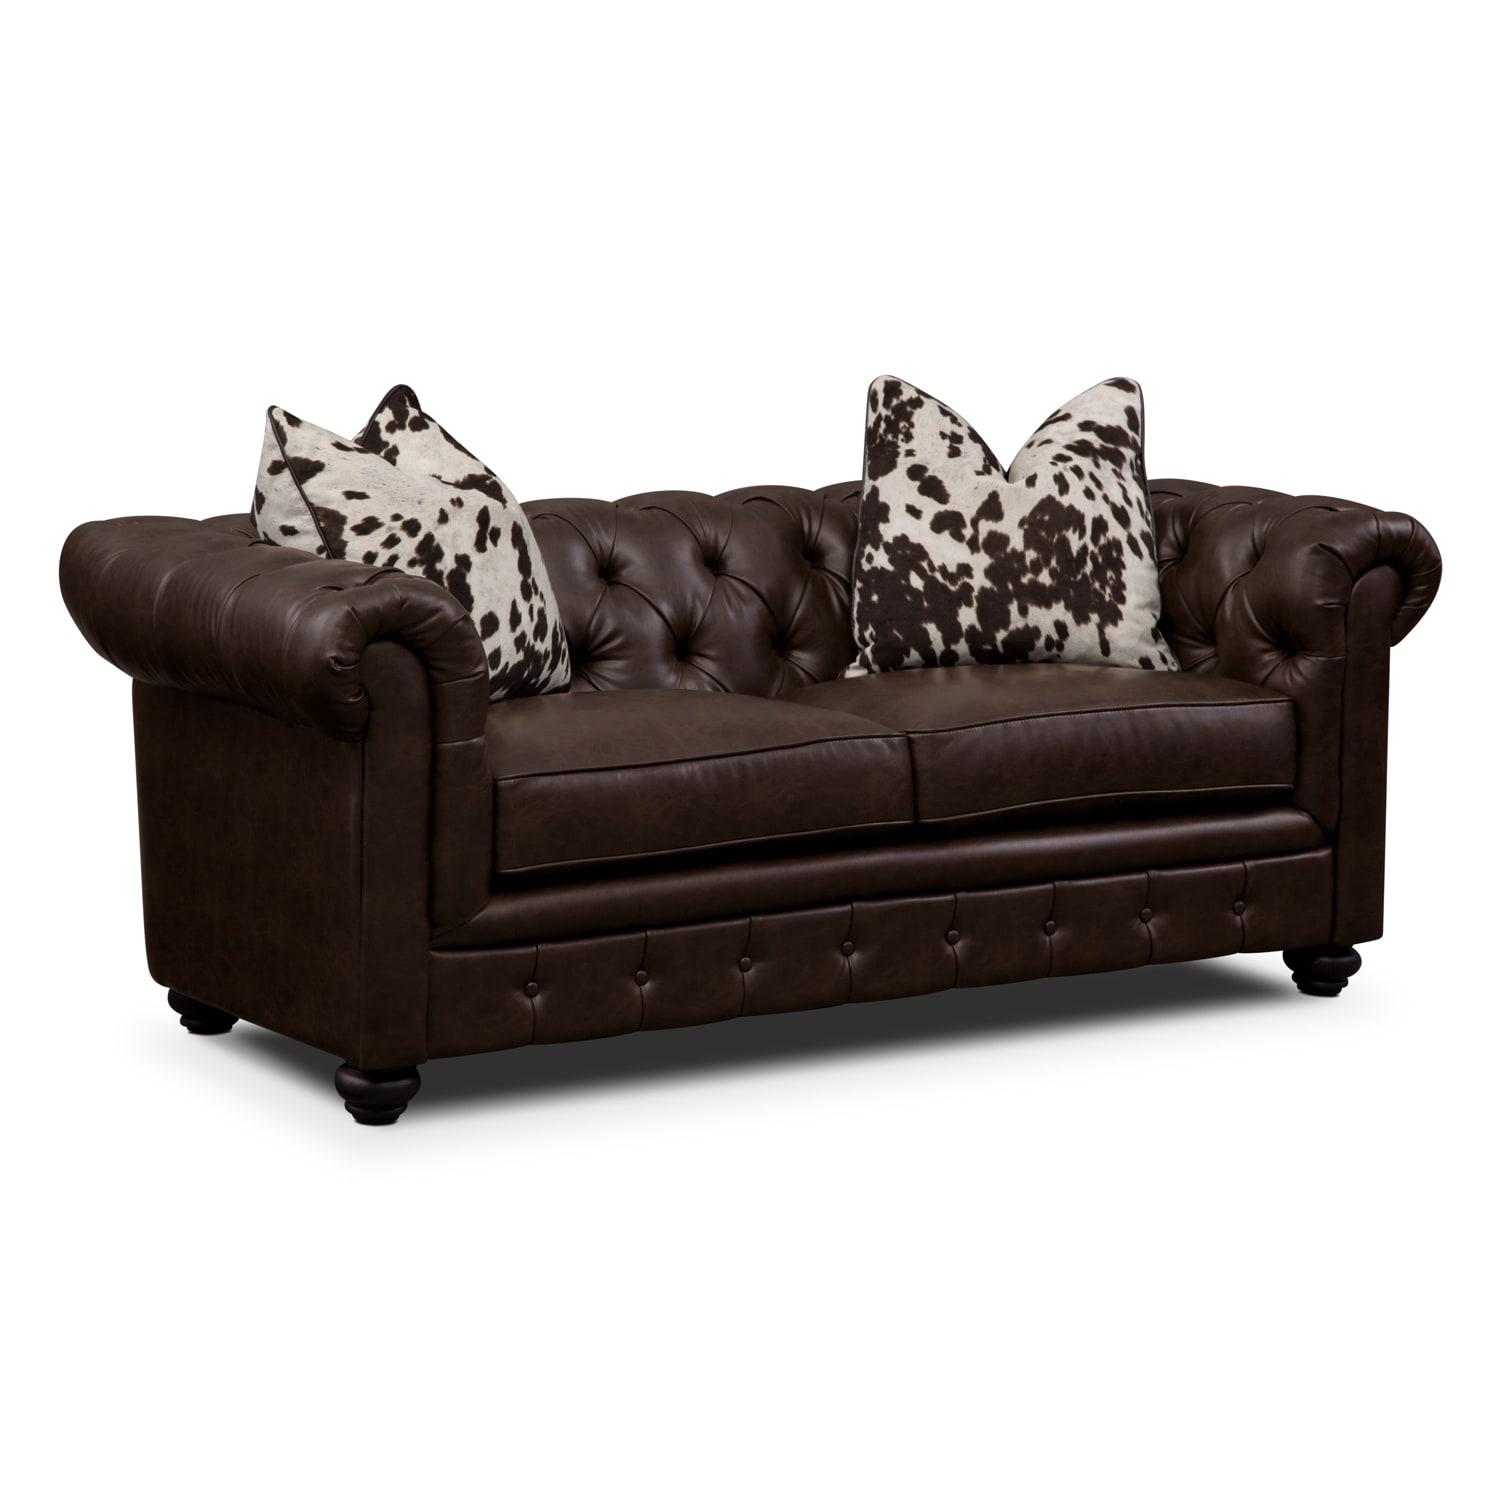 Living Room Furniture - Madeline Chocolate Apartment Sofa